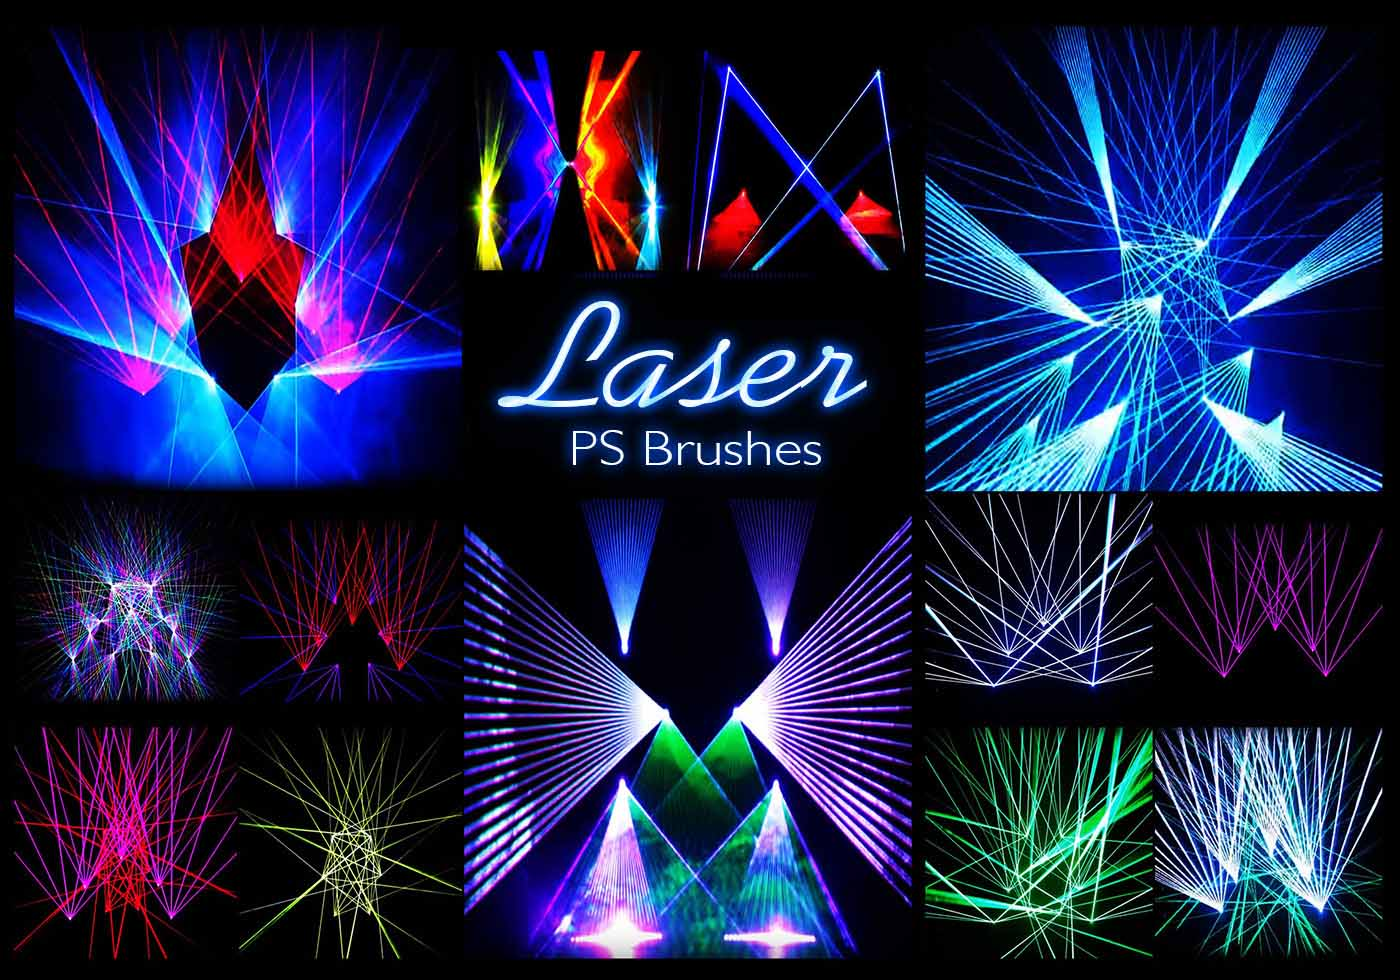 20 laser stage ps brushes abr  vol 13